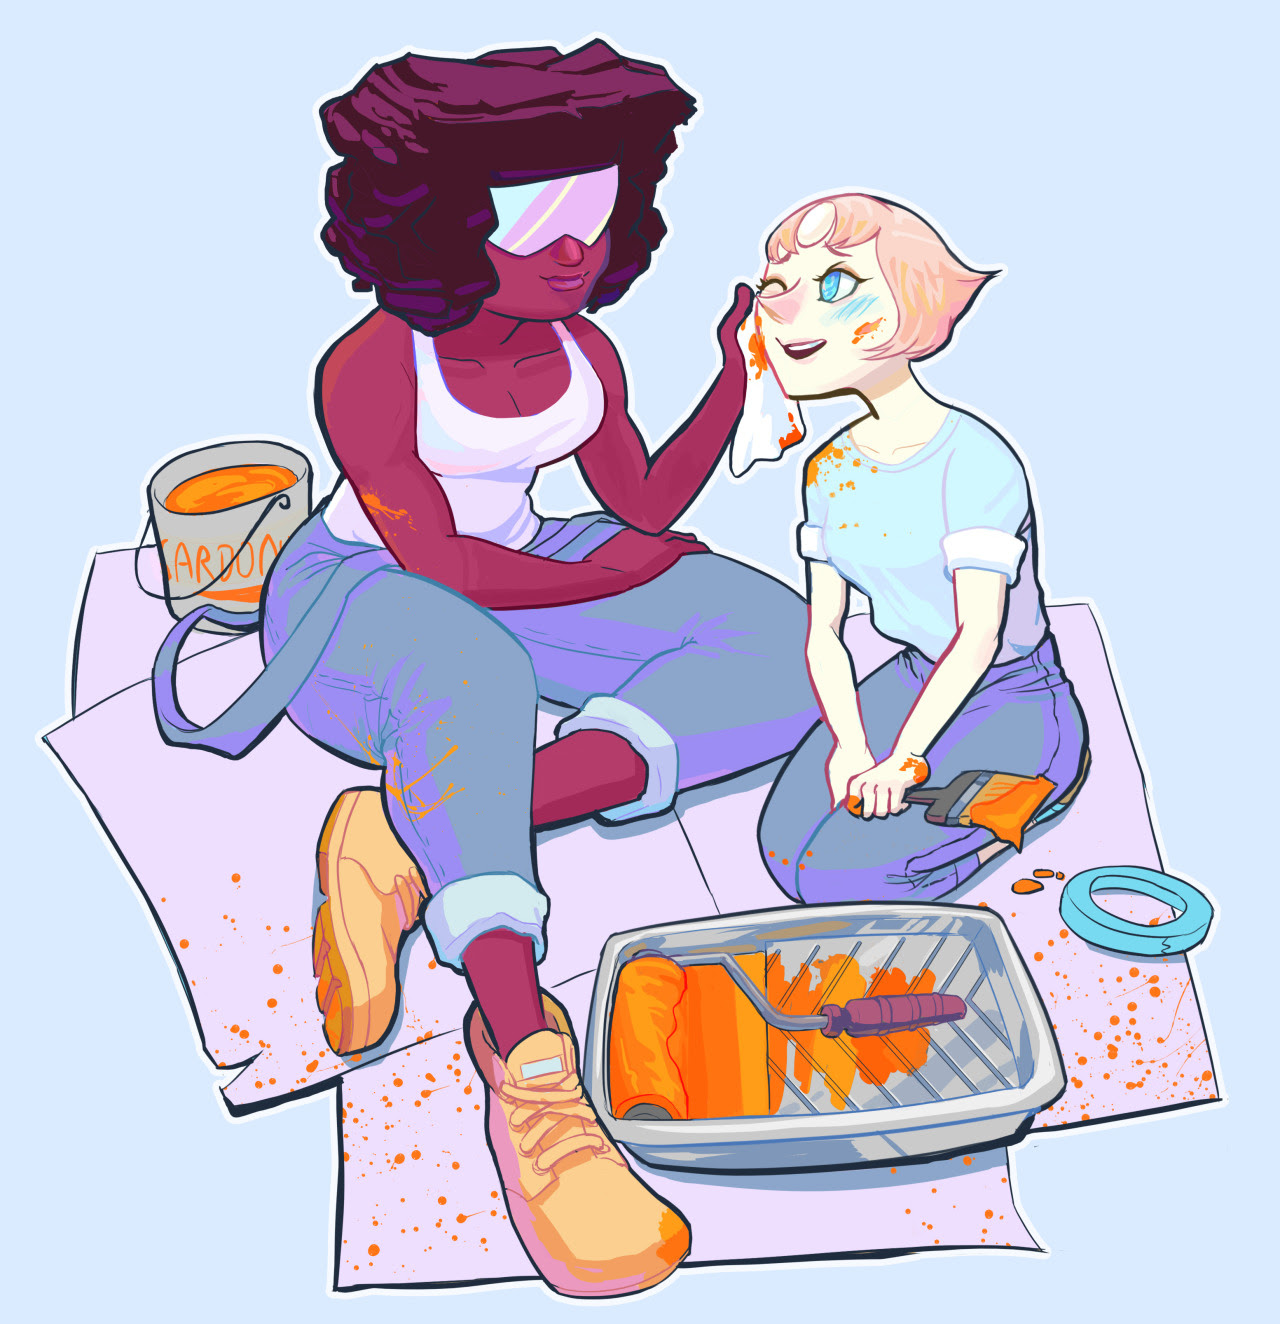 drew some pearlnet!